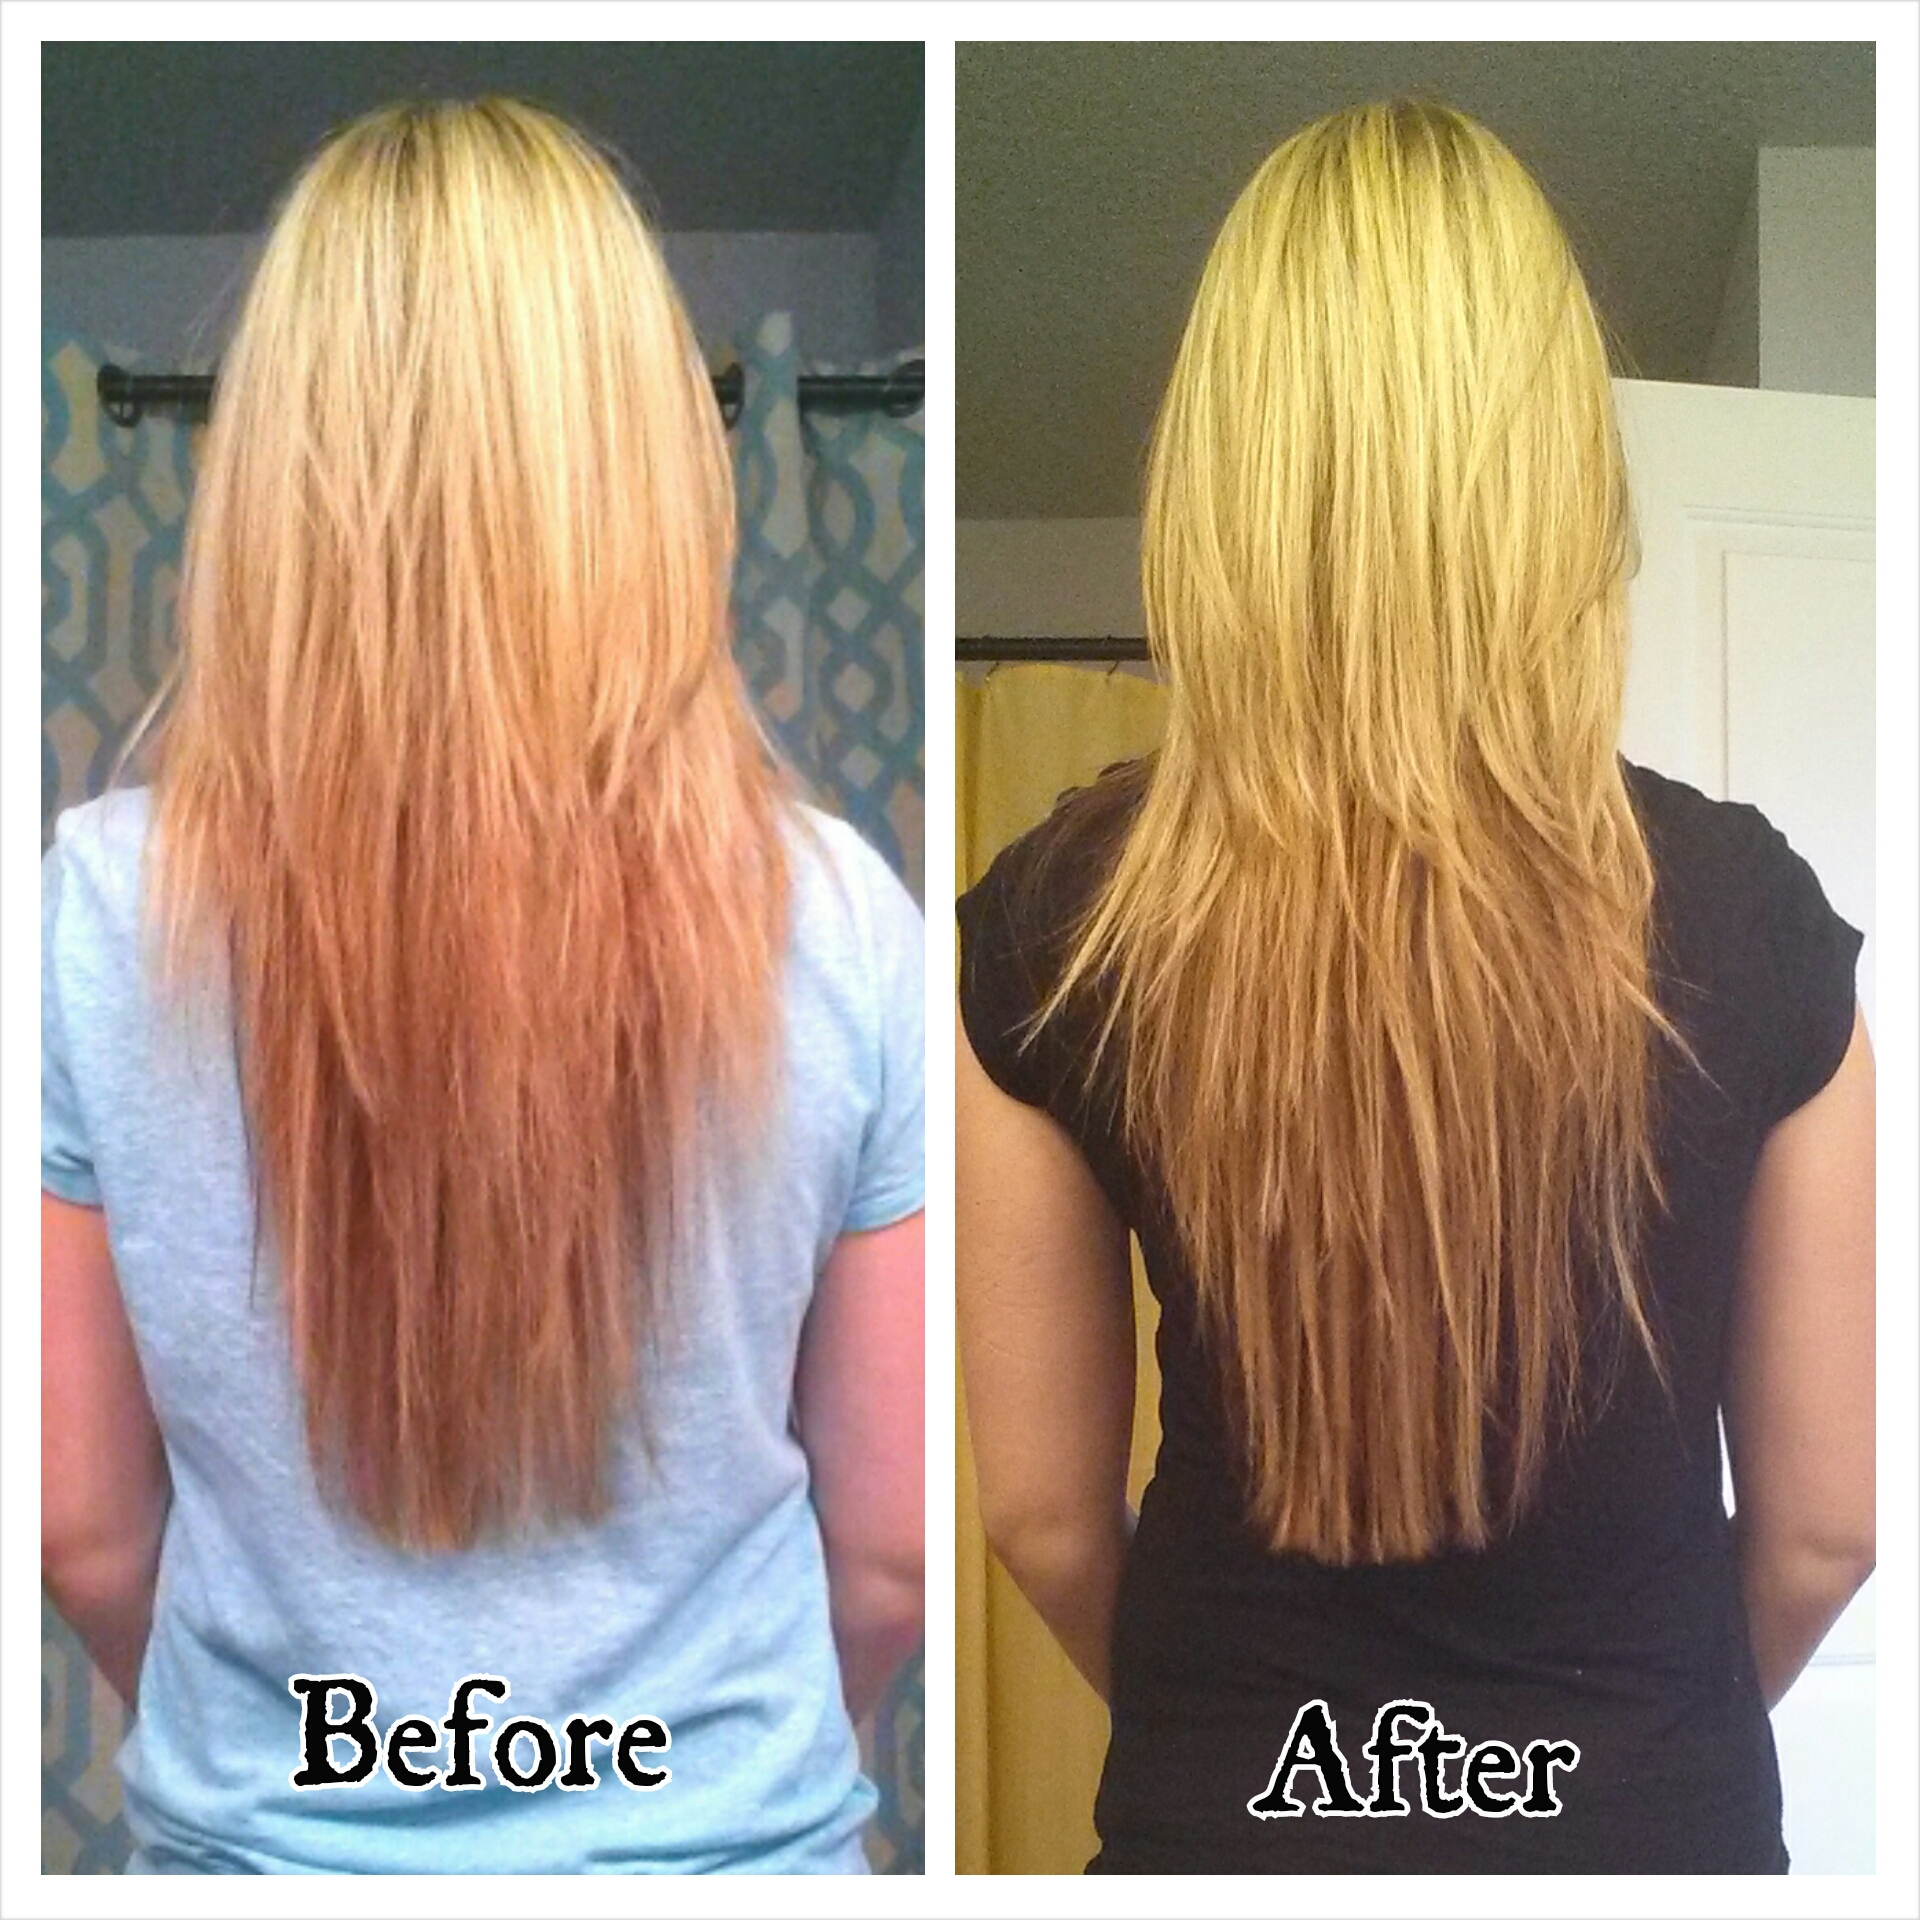 Sturdy Hair Thickening Hair Growth Reviews Collagen Collagen Healthy Collagen Ments Review Collagen nice food Collagen For Hair